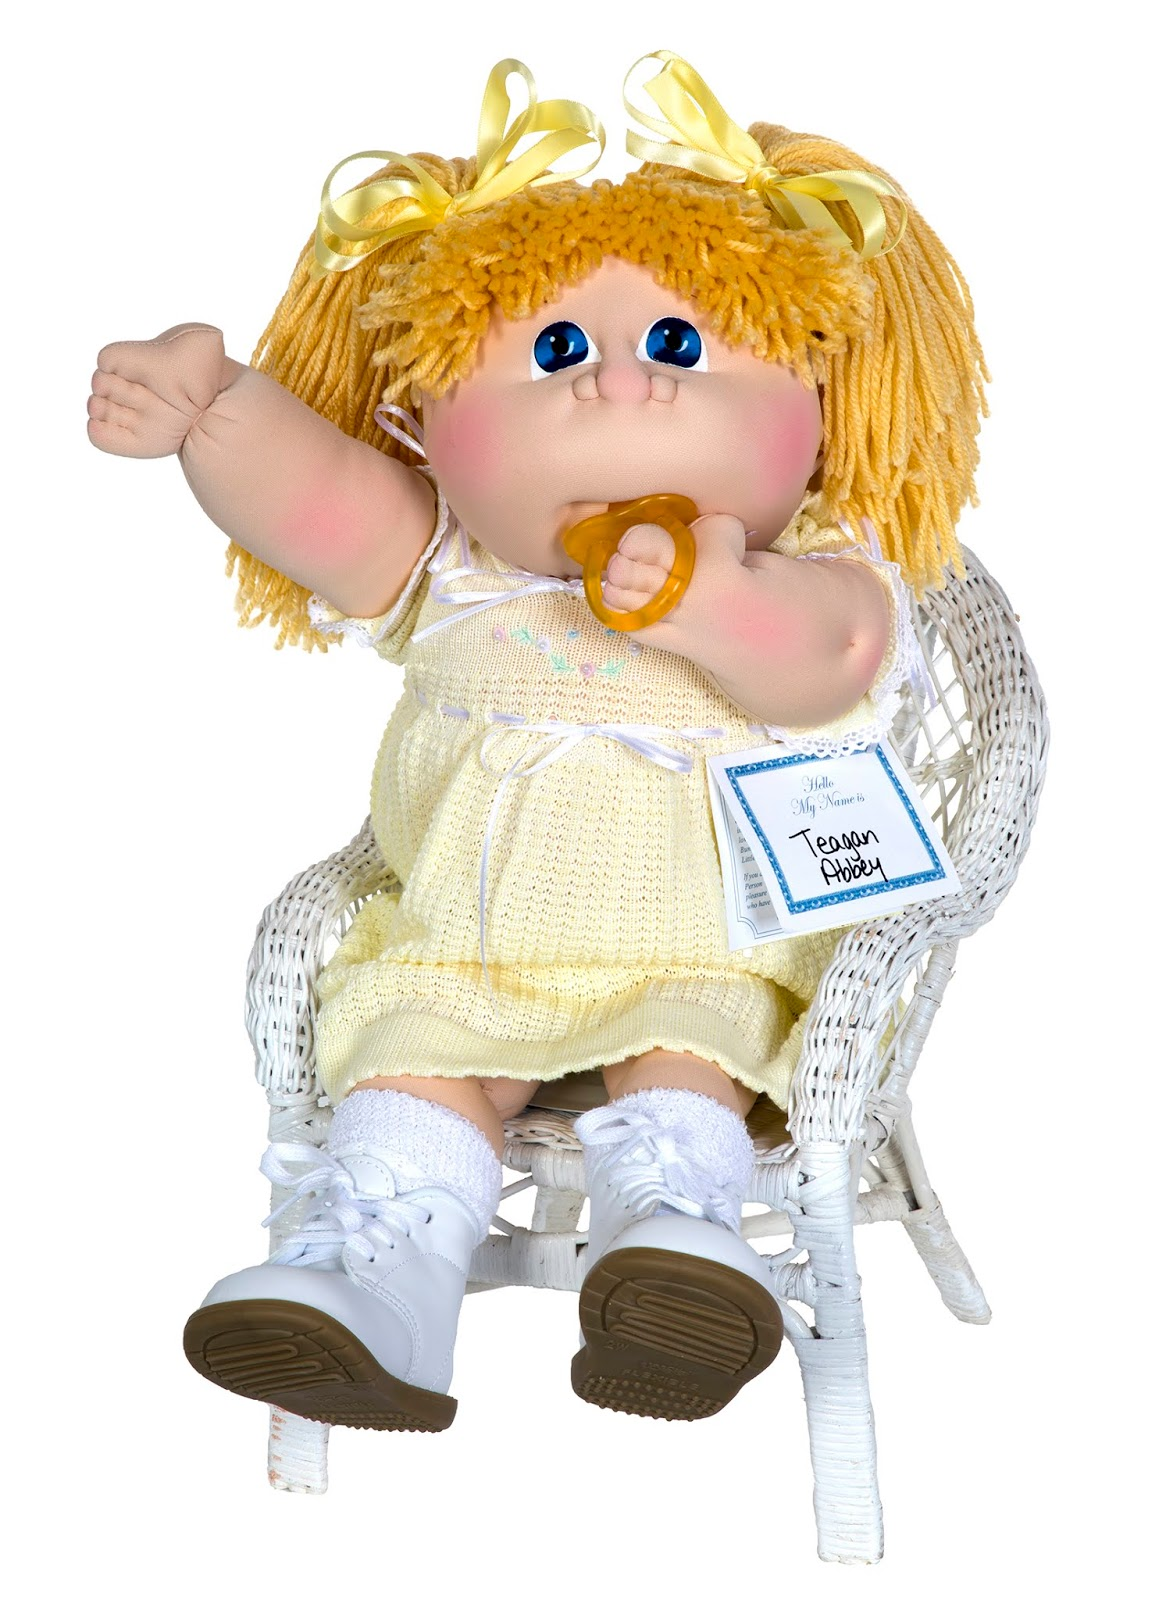 Weird, wacky and wild south: cabbage patch kids celebrate 35 years.